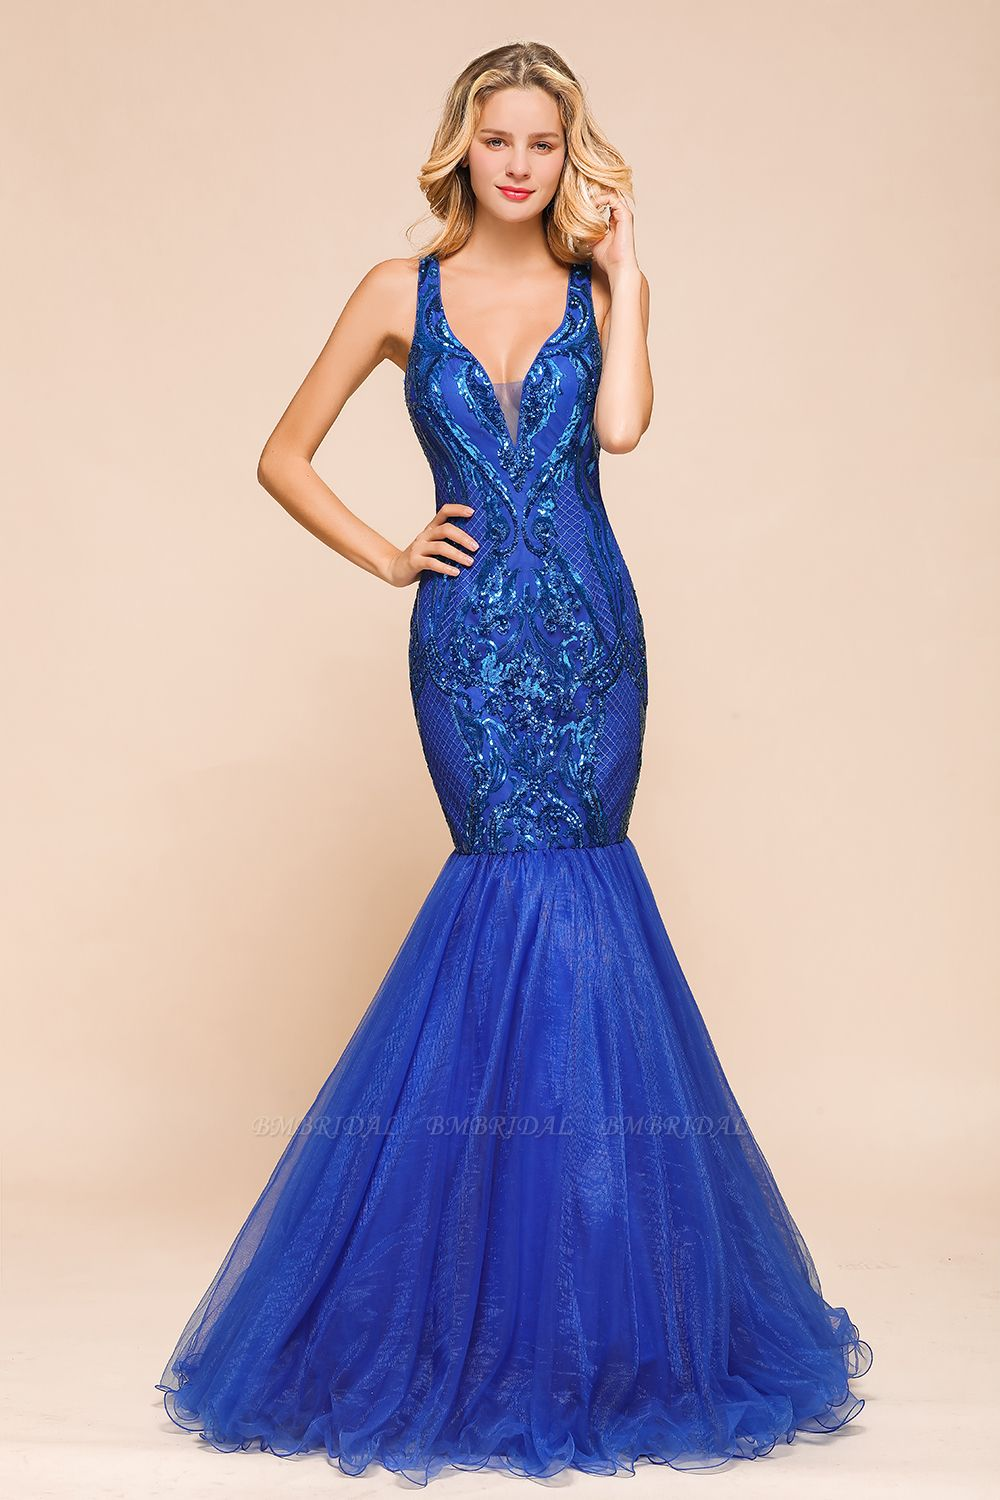 Gorgeous Royal Blue Mermaid Prom Dress Long Sequins Evening Party Gowns Online